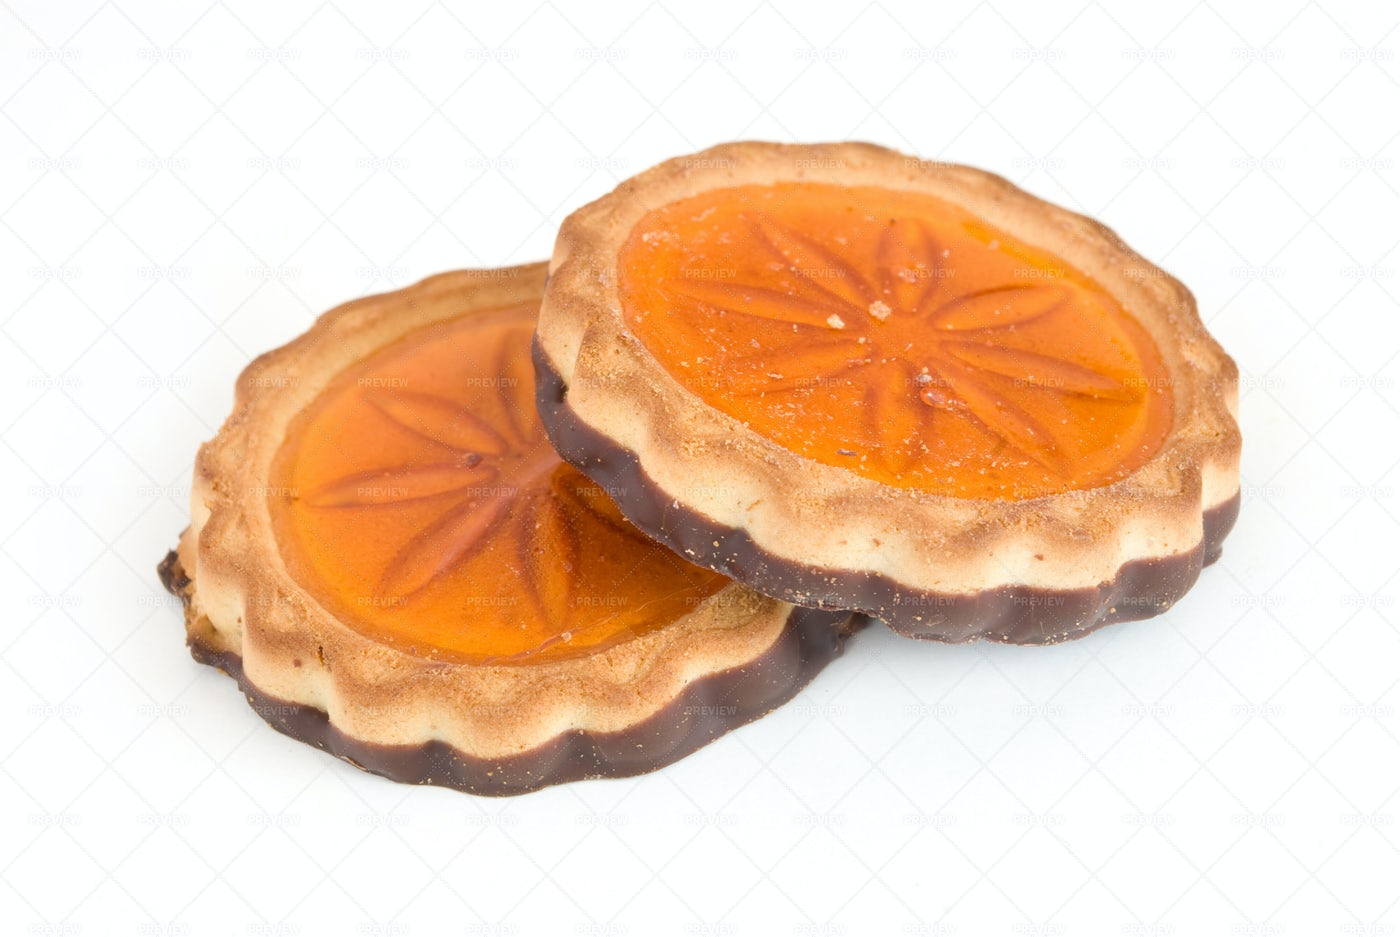 Round Cookies With Jelly: Stock Photos